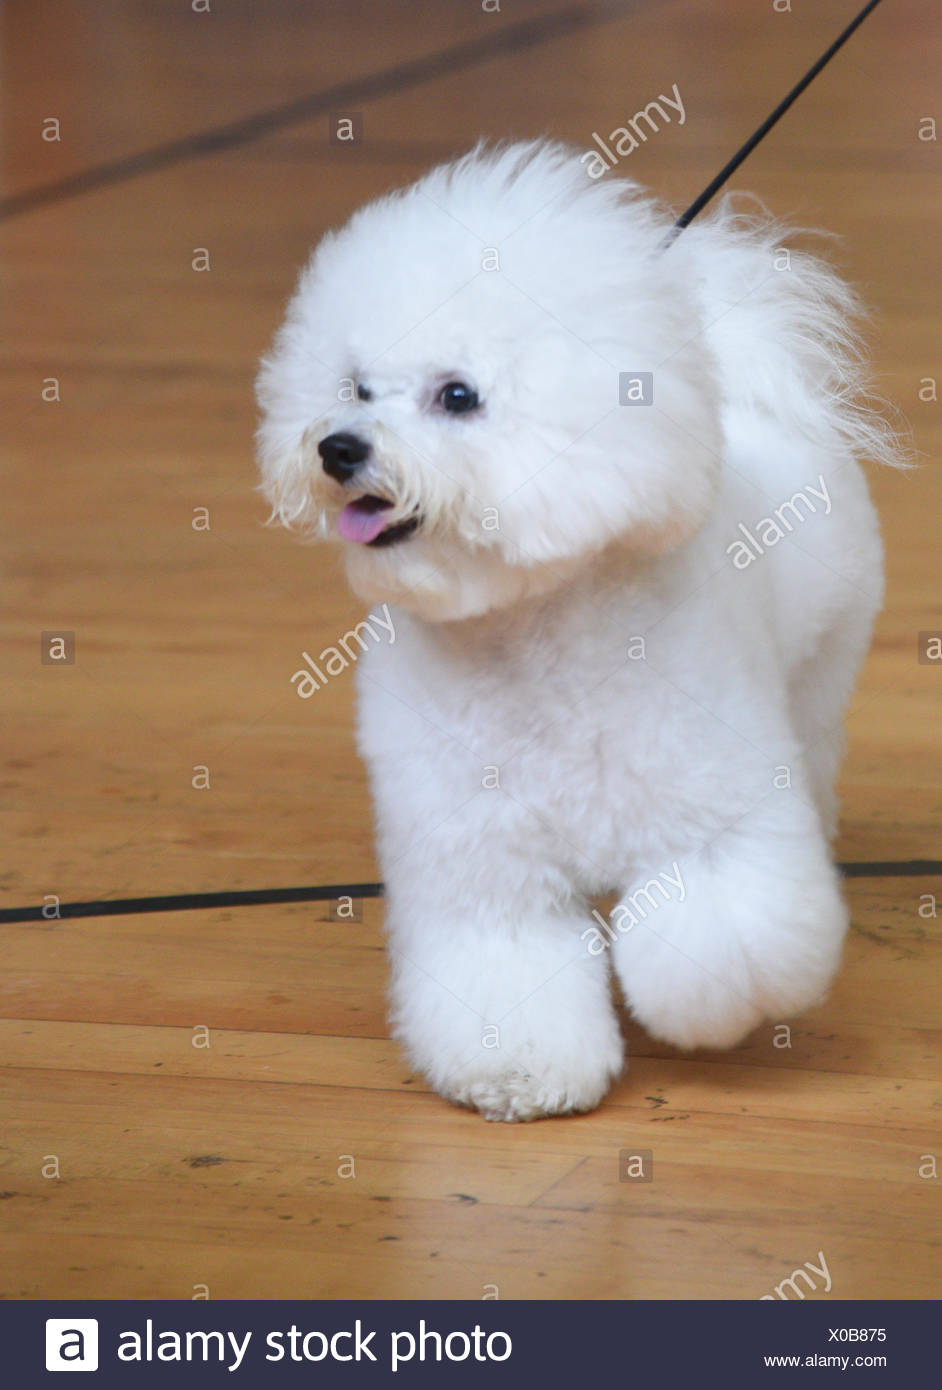 Bichon Frise (curly lap dog) is a small breed of dog of the